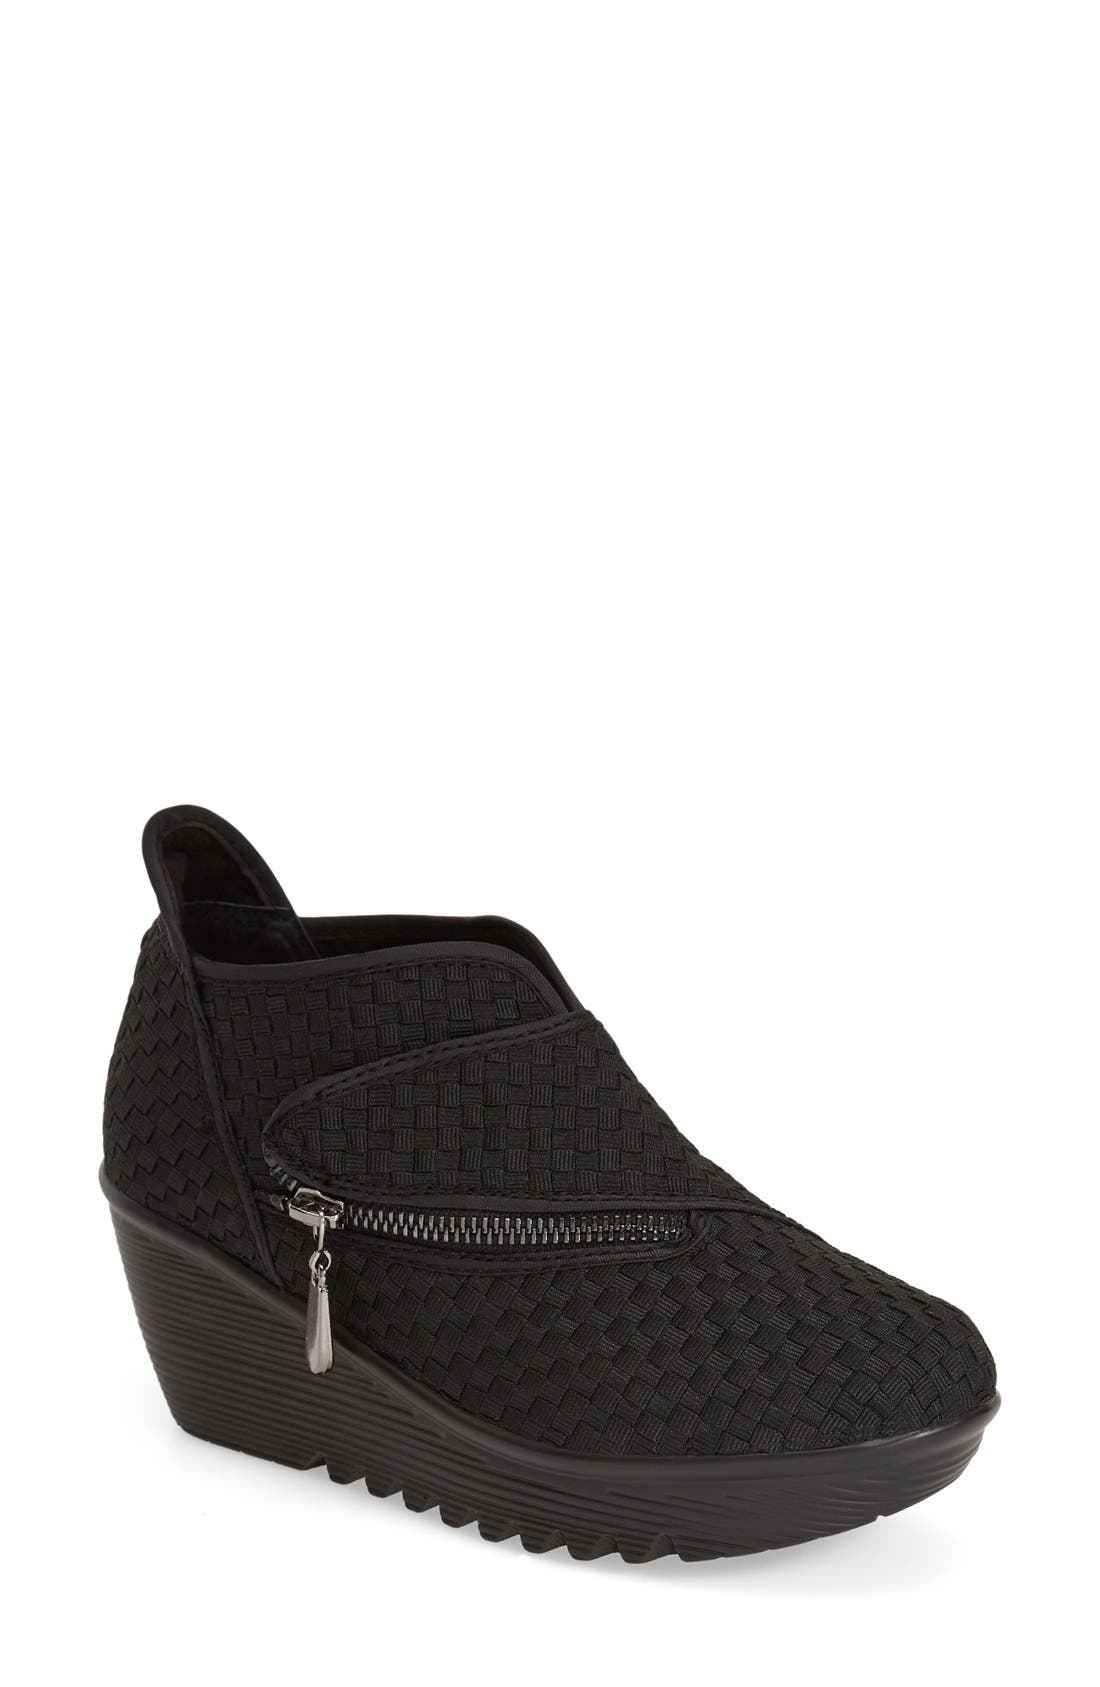 'ZigZag' Wedge Bootie,                             Main thumbnail 1, color,                             001